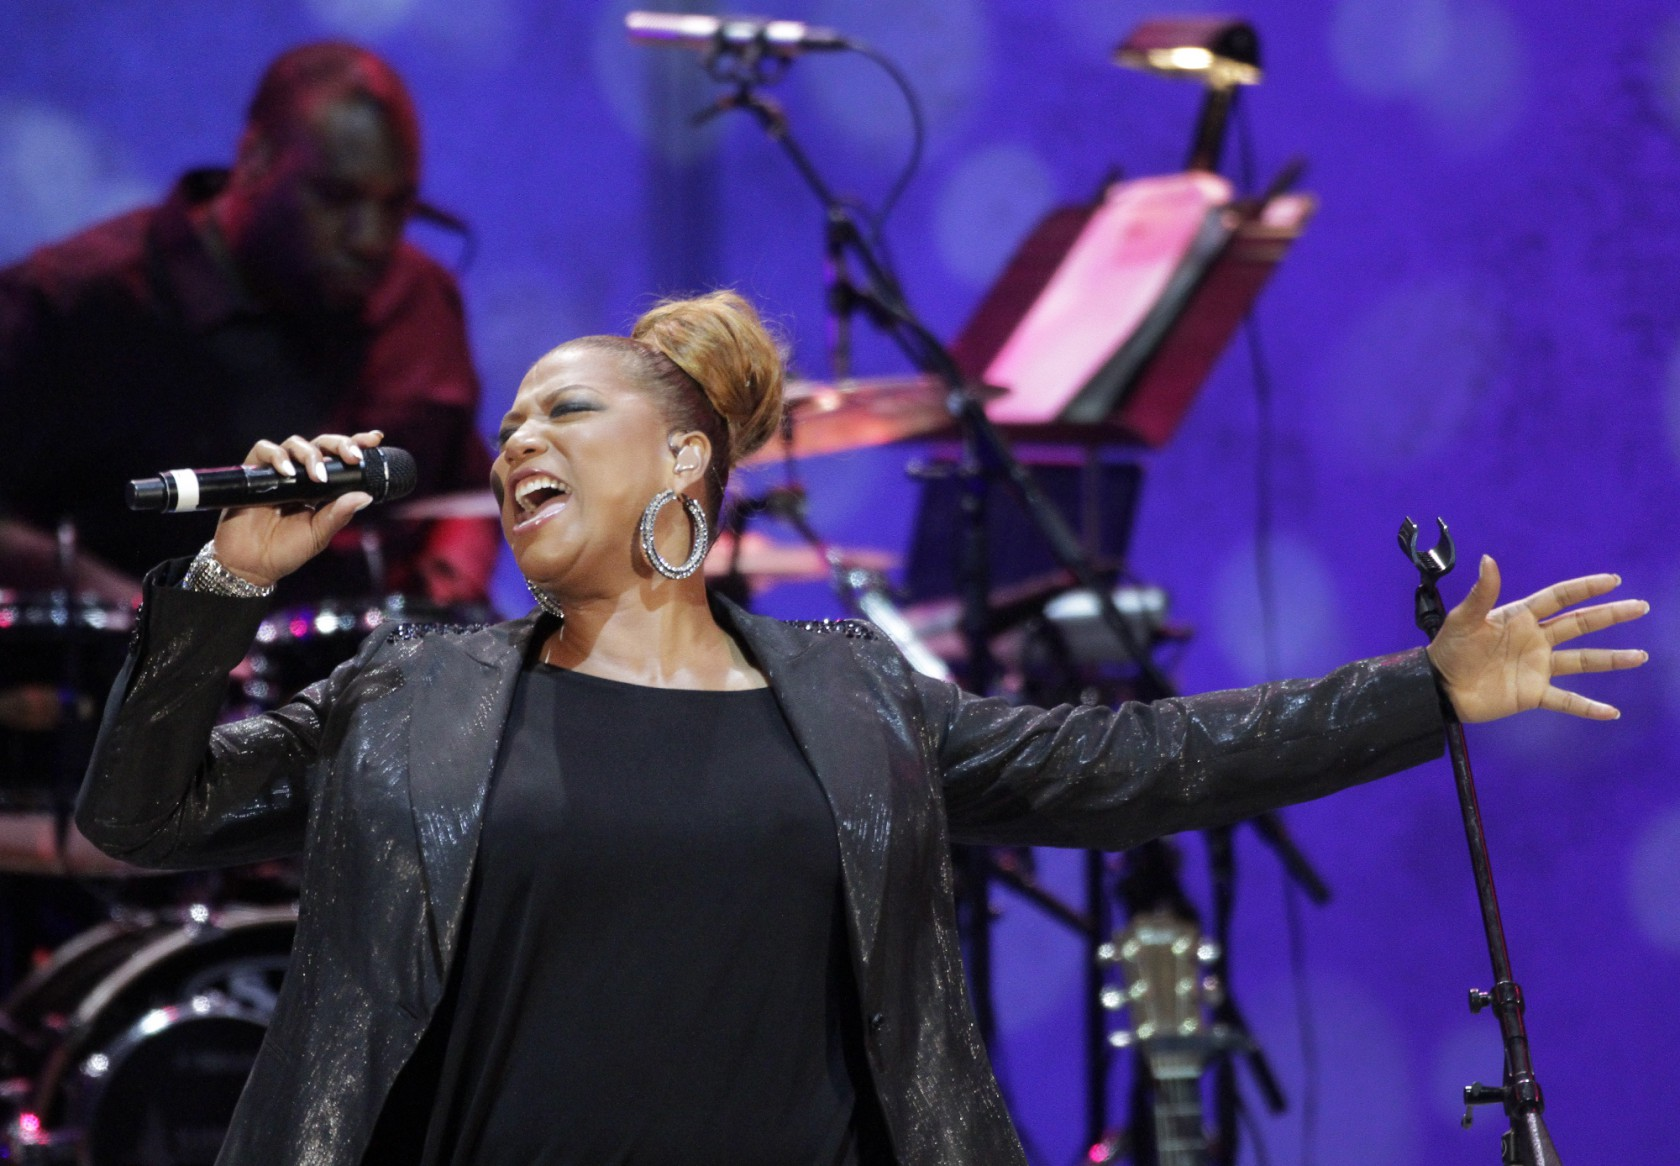 QUEEN LATIFAH headlining the show on Jul. 10, 2013 at the Hollywood Bowl. QUEEN LATIFAH and vibraph